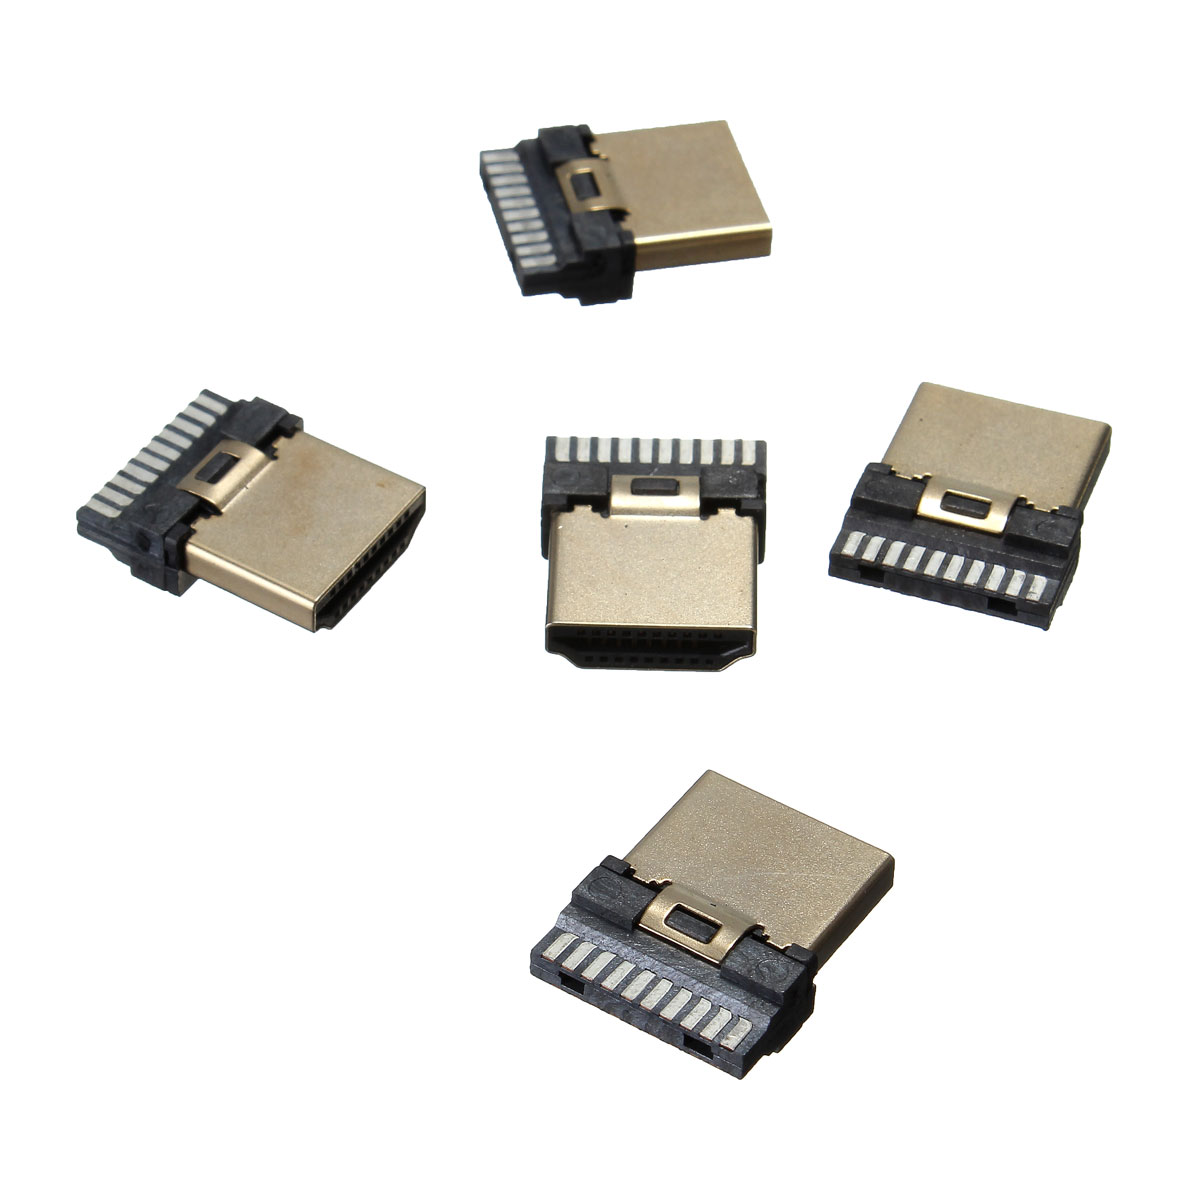 Brand New High Quality Durable 5Pcs HDMI 19Pins Male Video Termination Repair Replace Kit Gold Plated Connector(China (Mainland))